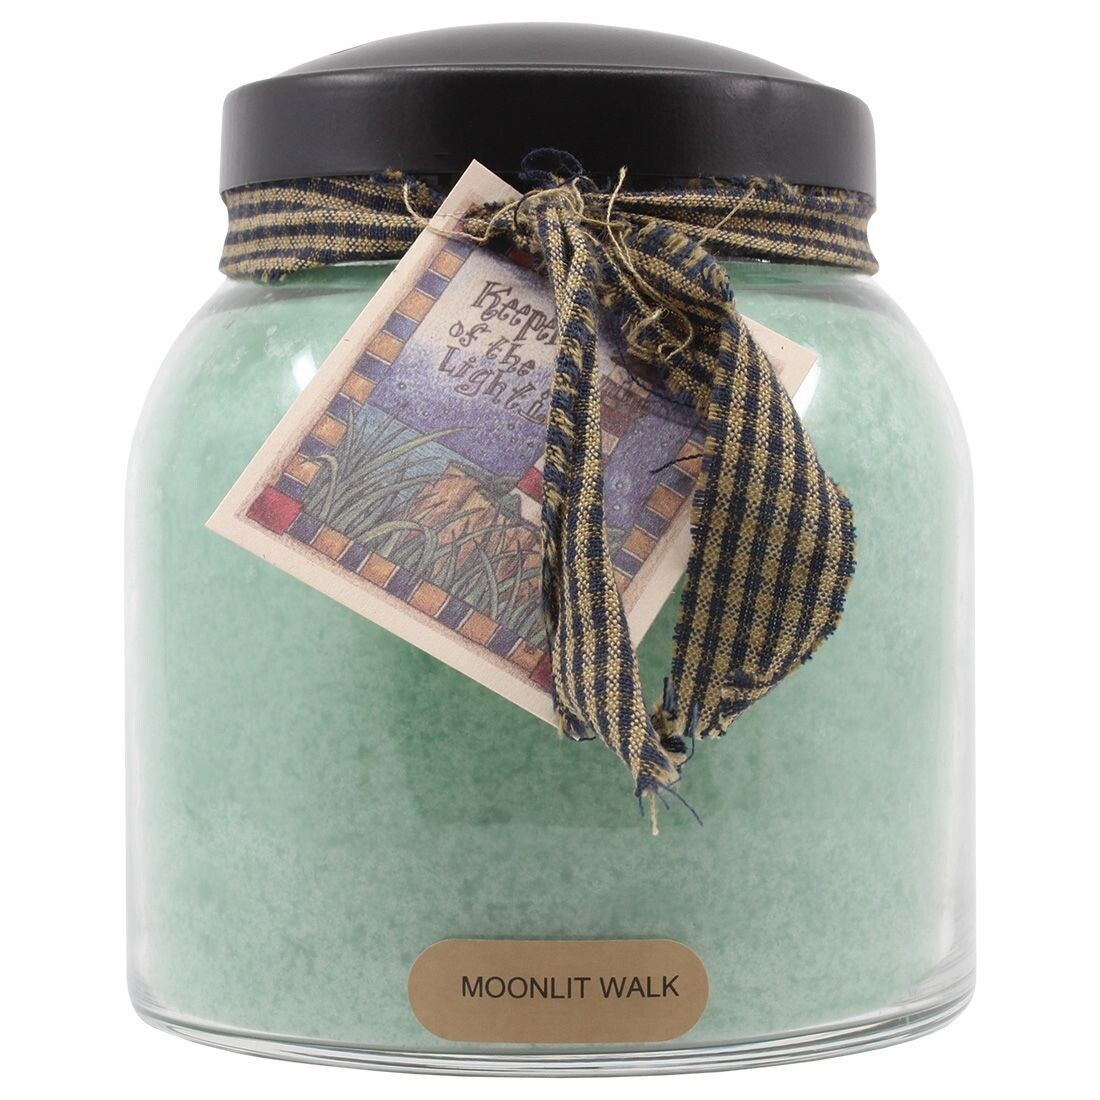 Moonlit Walk - Papa Jar - 34 oz - Double Wick - Keepers of the Light Candle